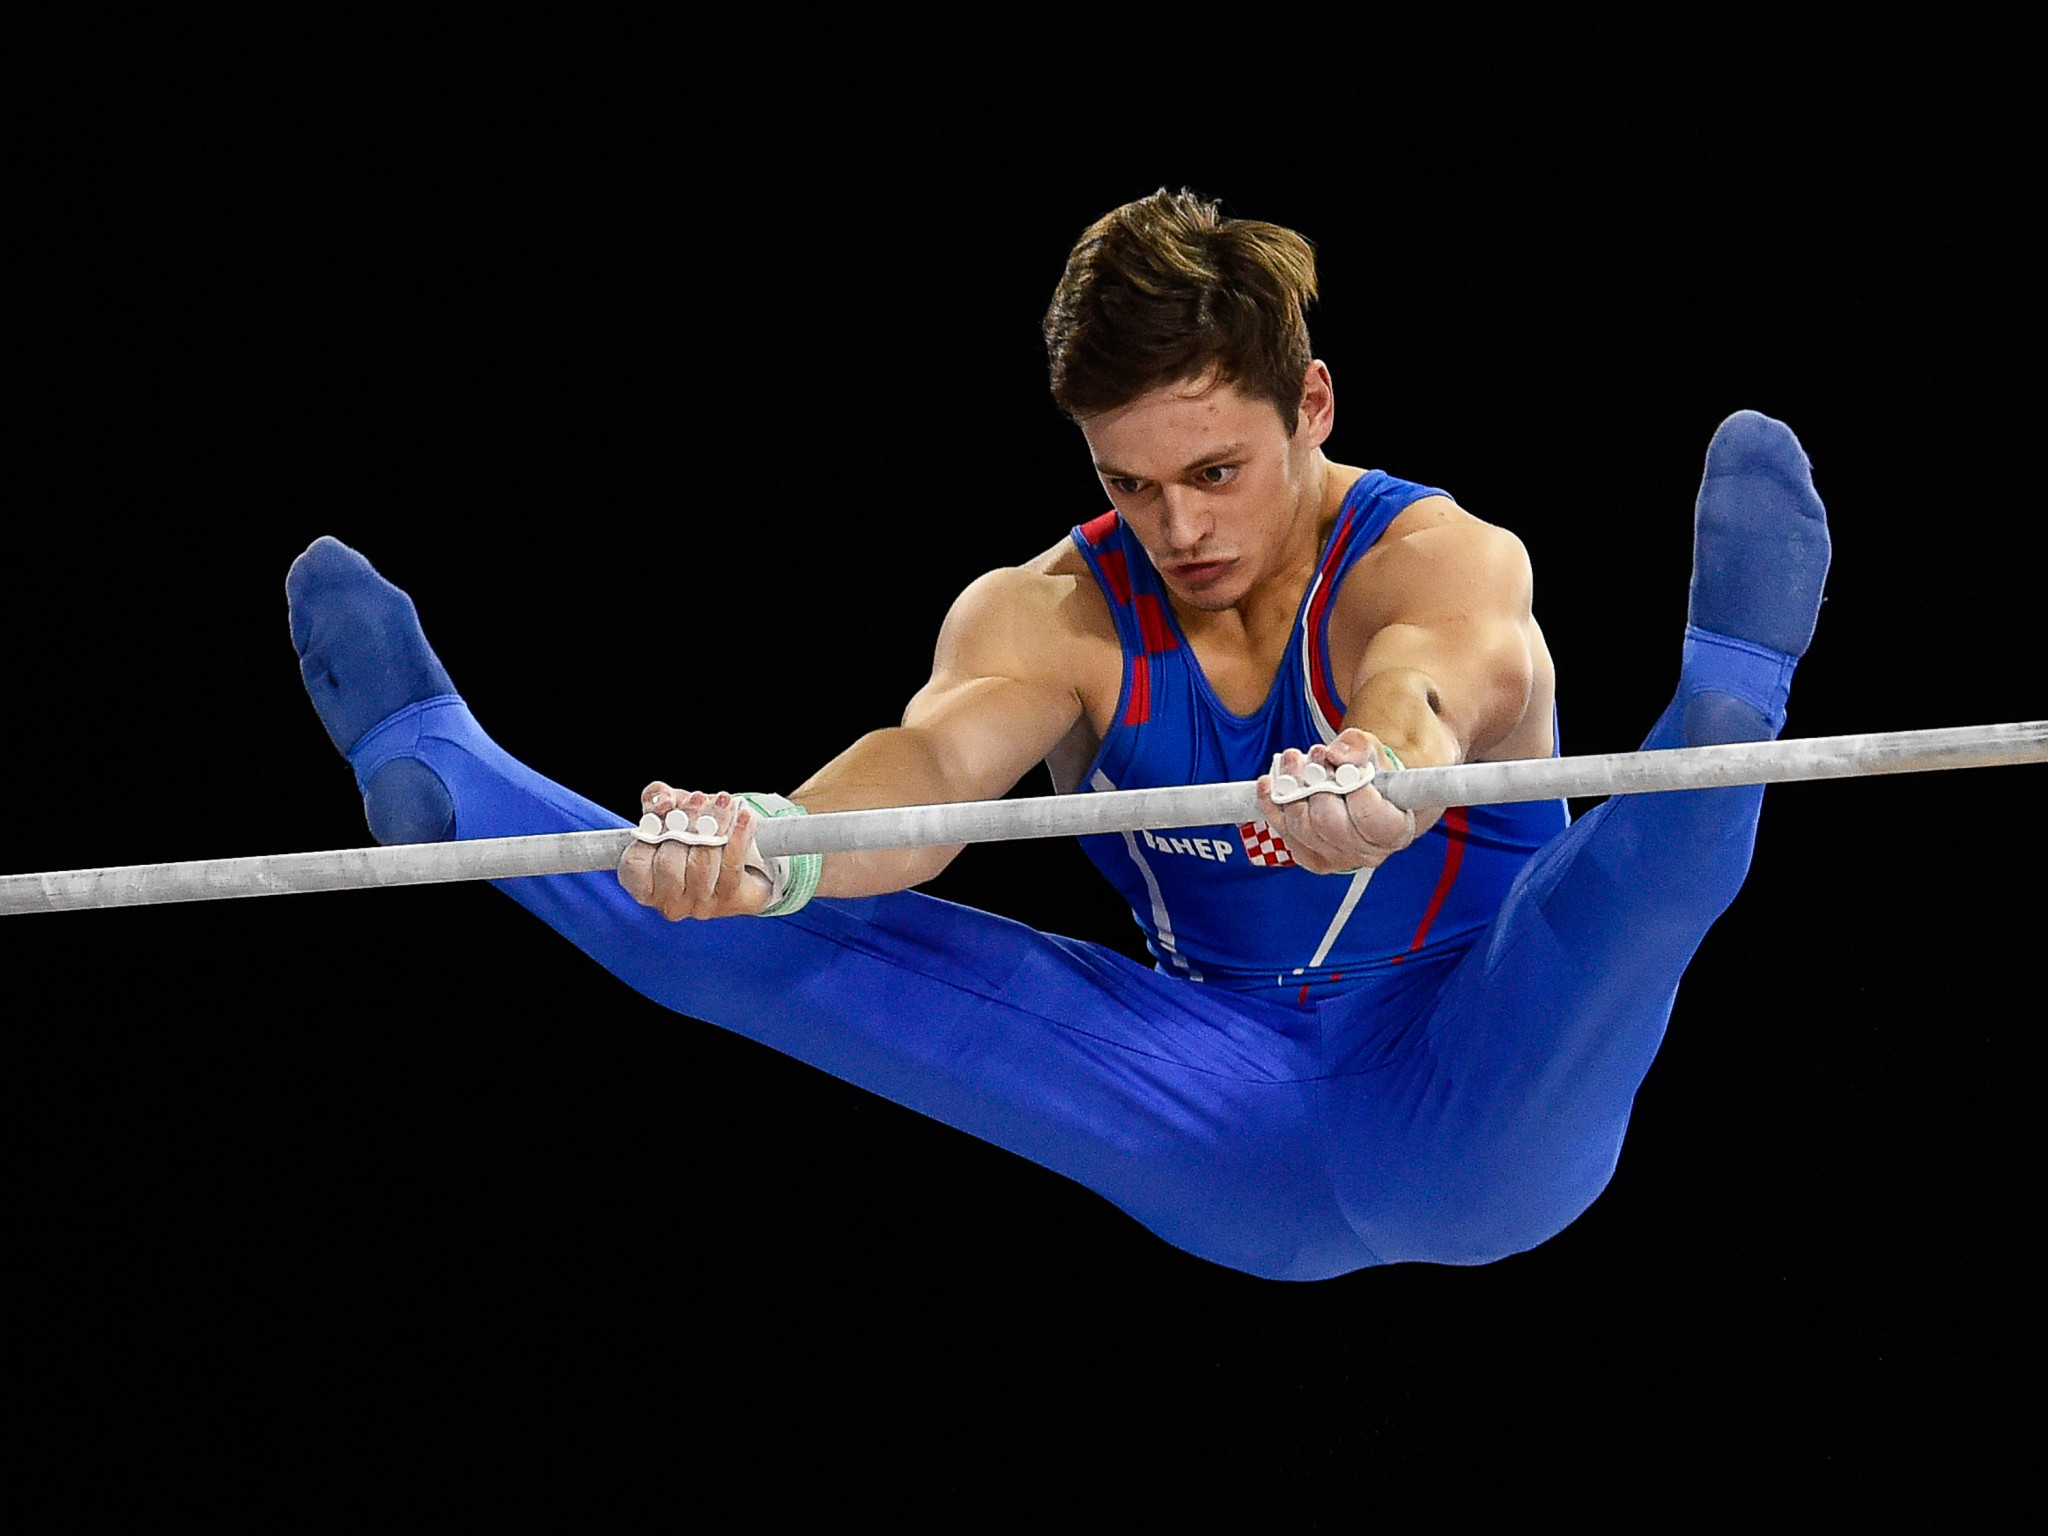 Srbić enjoys home win as Varinska dominates at FIG World Challenge Cup